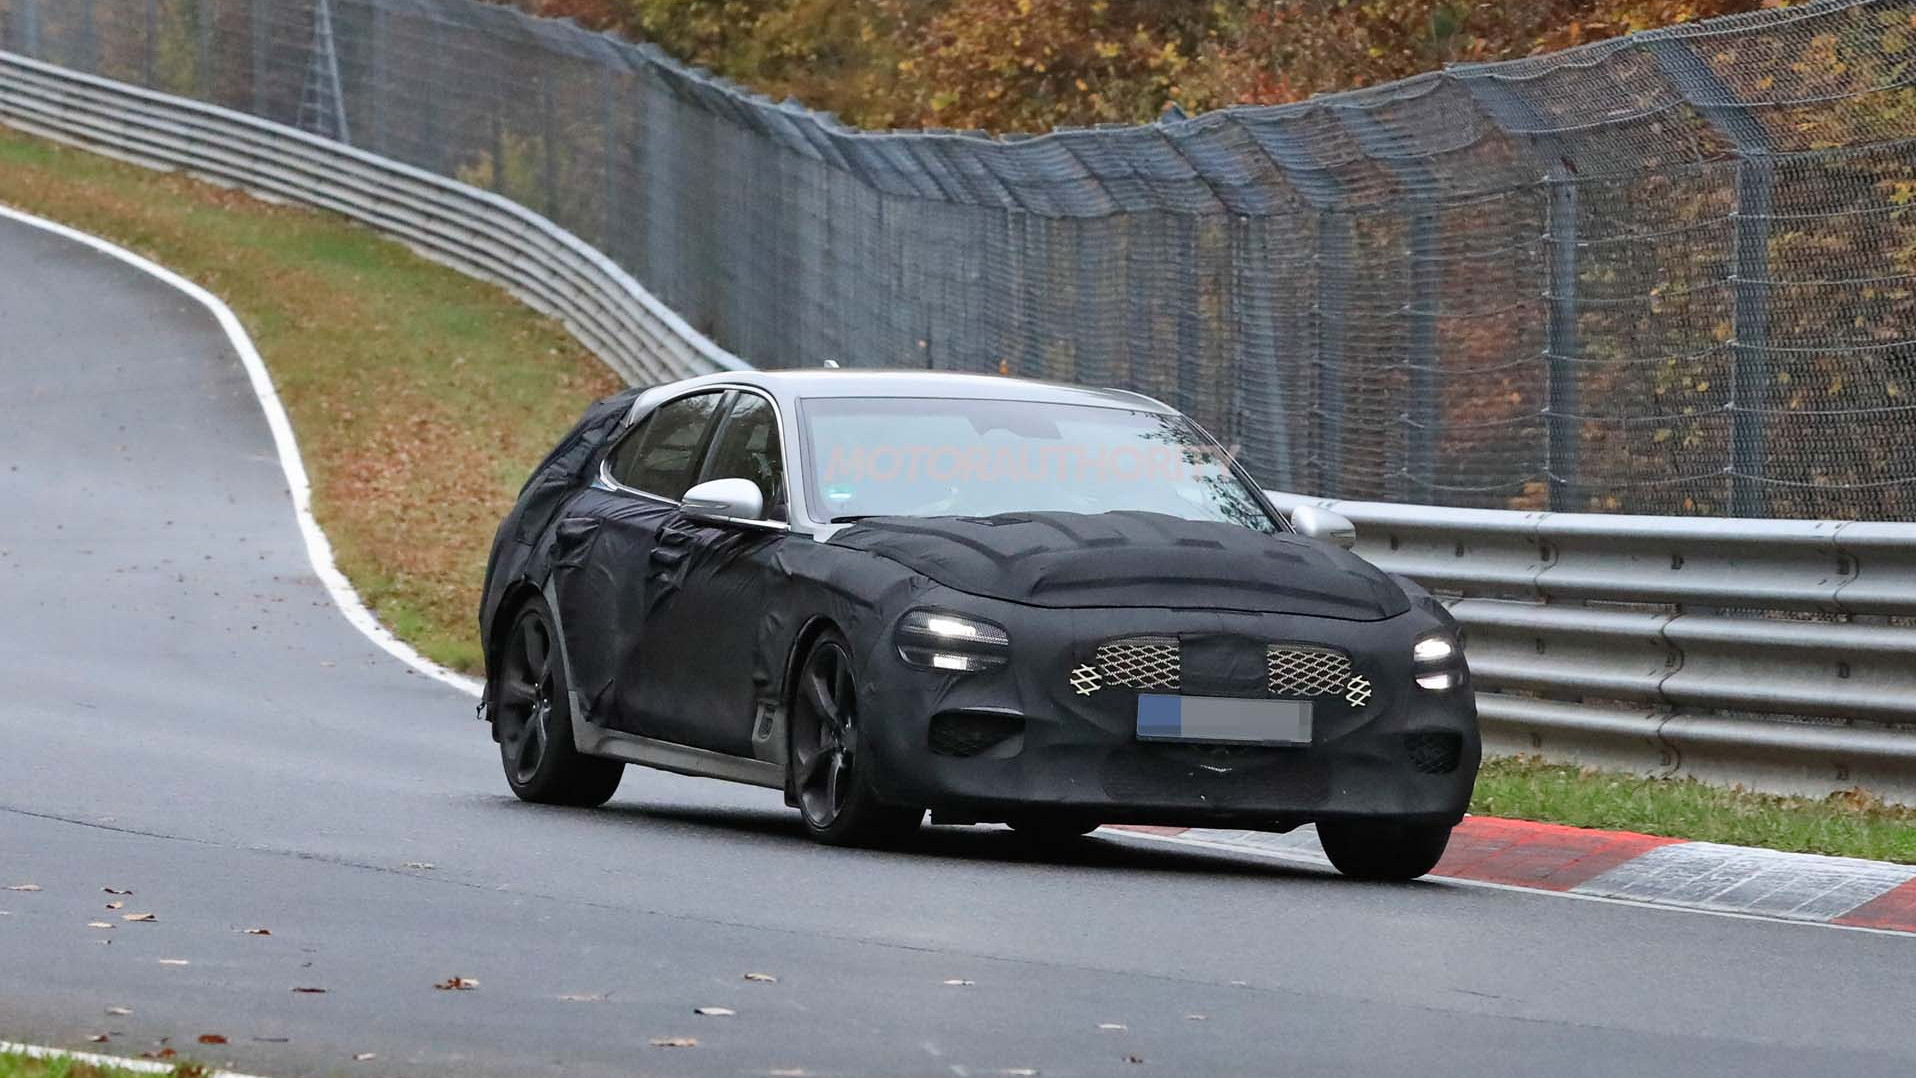 2022 Genesis G70 wagon spy shots